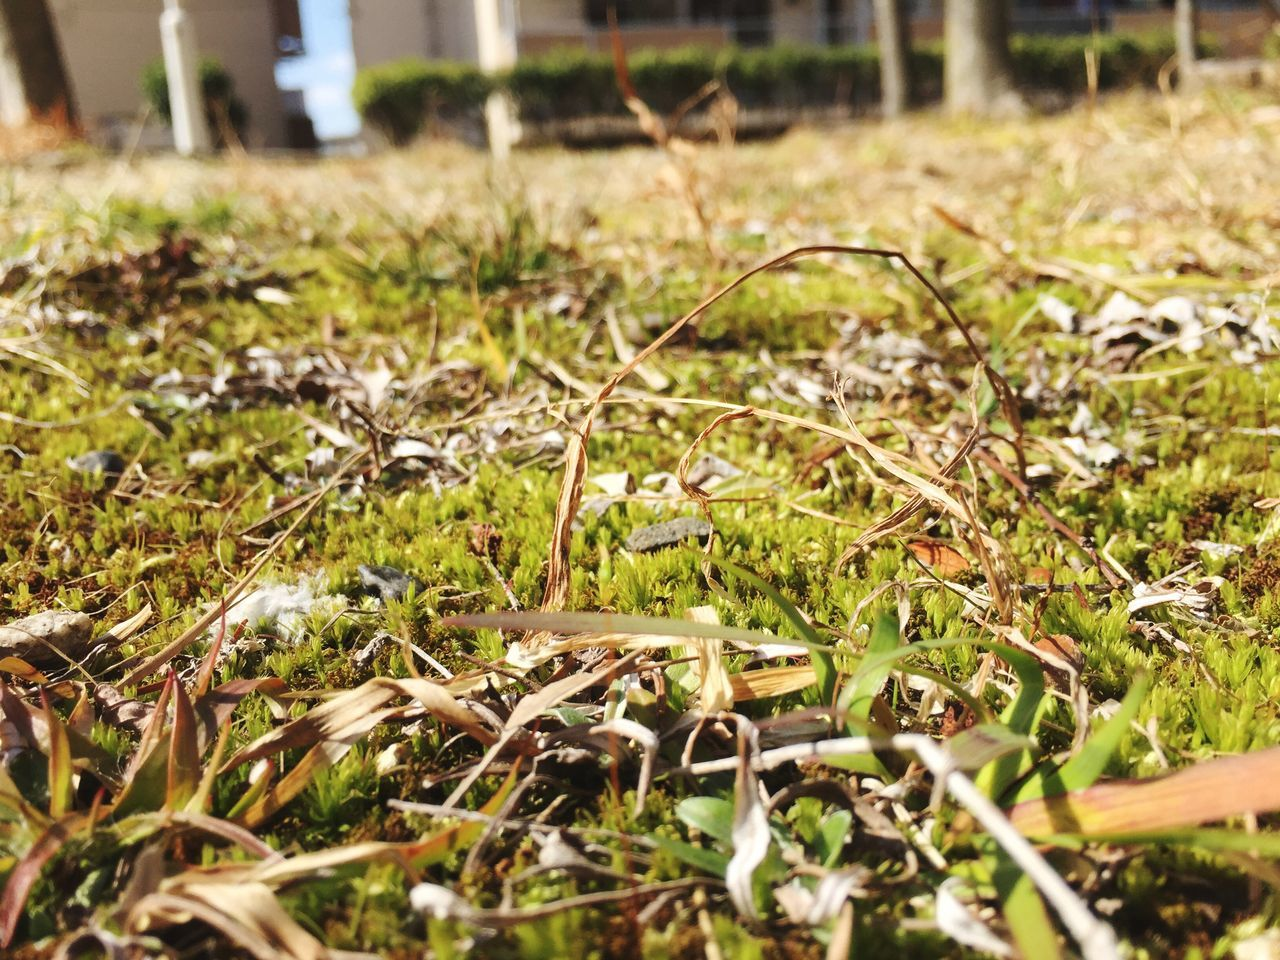 selective focus, nature, grass, field, growth, no people, day, outdoors, close-up, beauty in nature, freshness